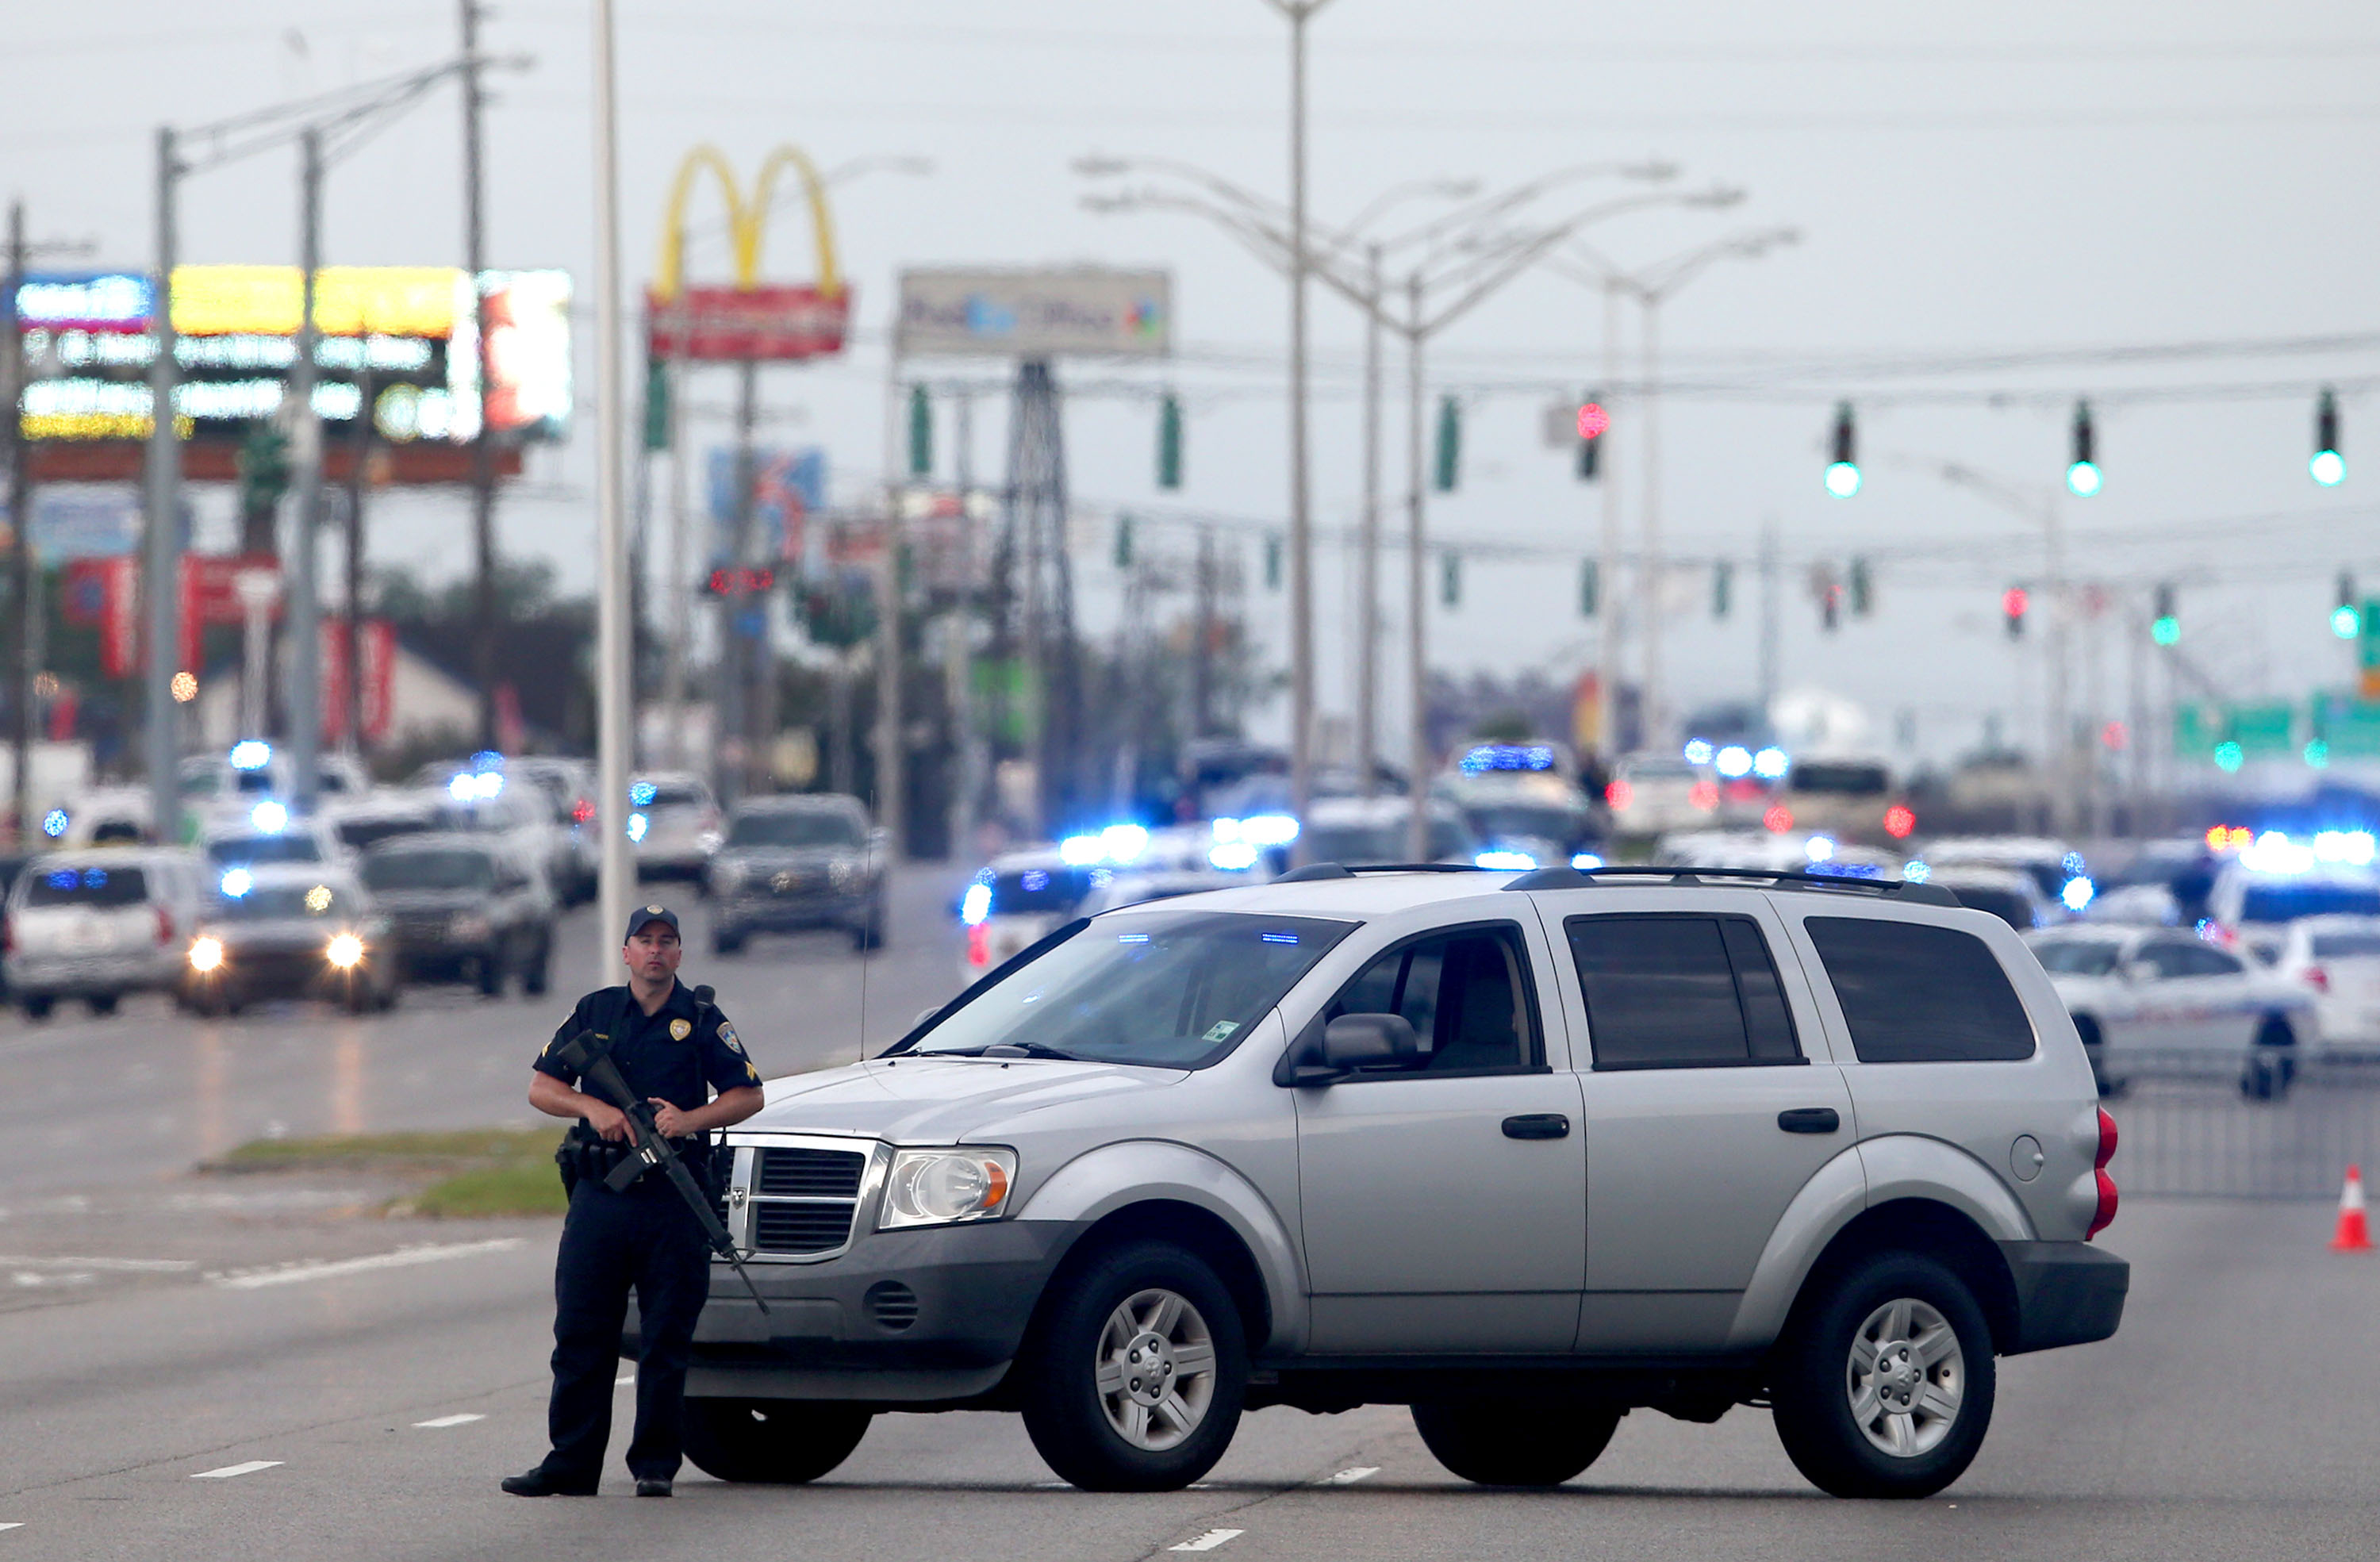 An East Baton Rouge Police officer patrols Airline Hwy after 3 police officers were killed early this morning on July 17, 2016 in Baton Rouge, Louisiana